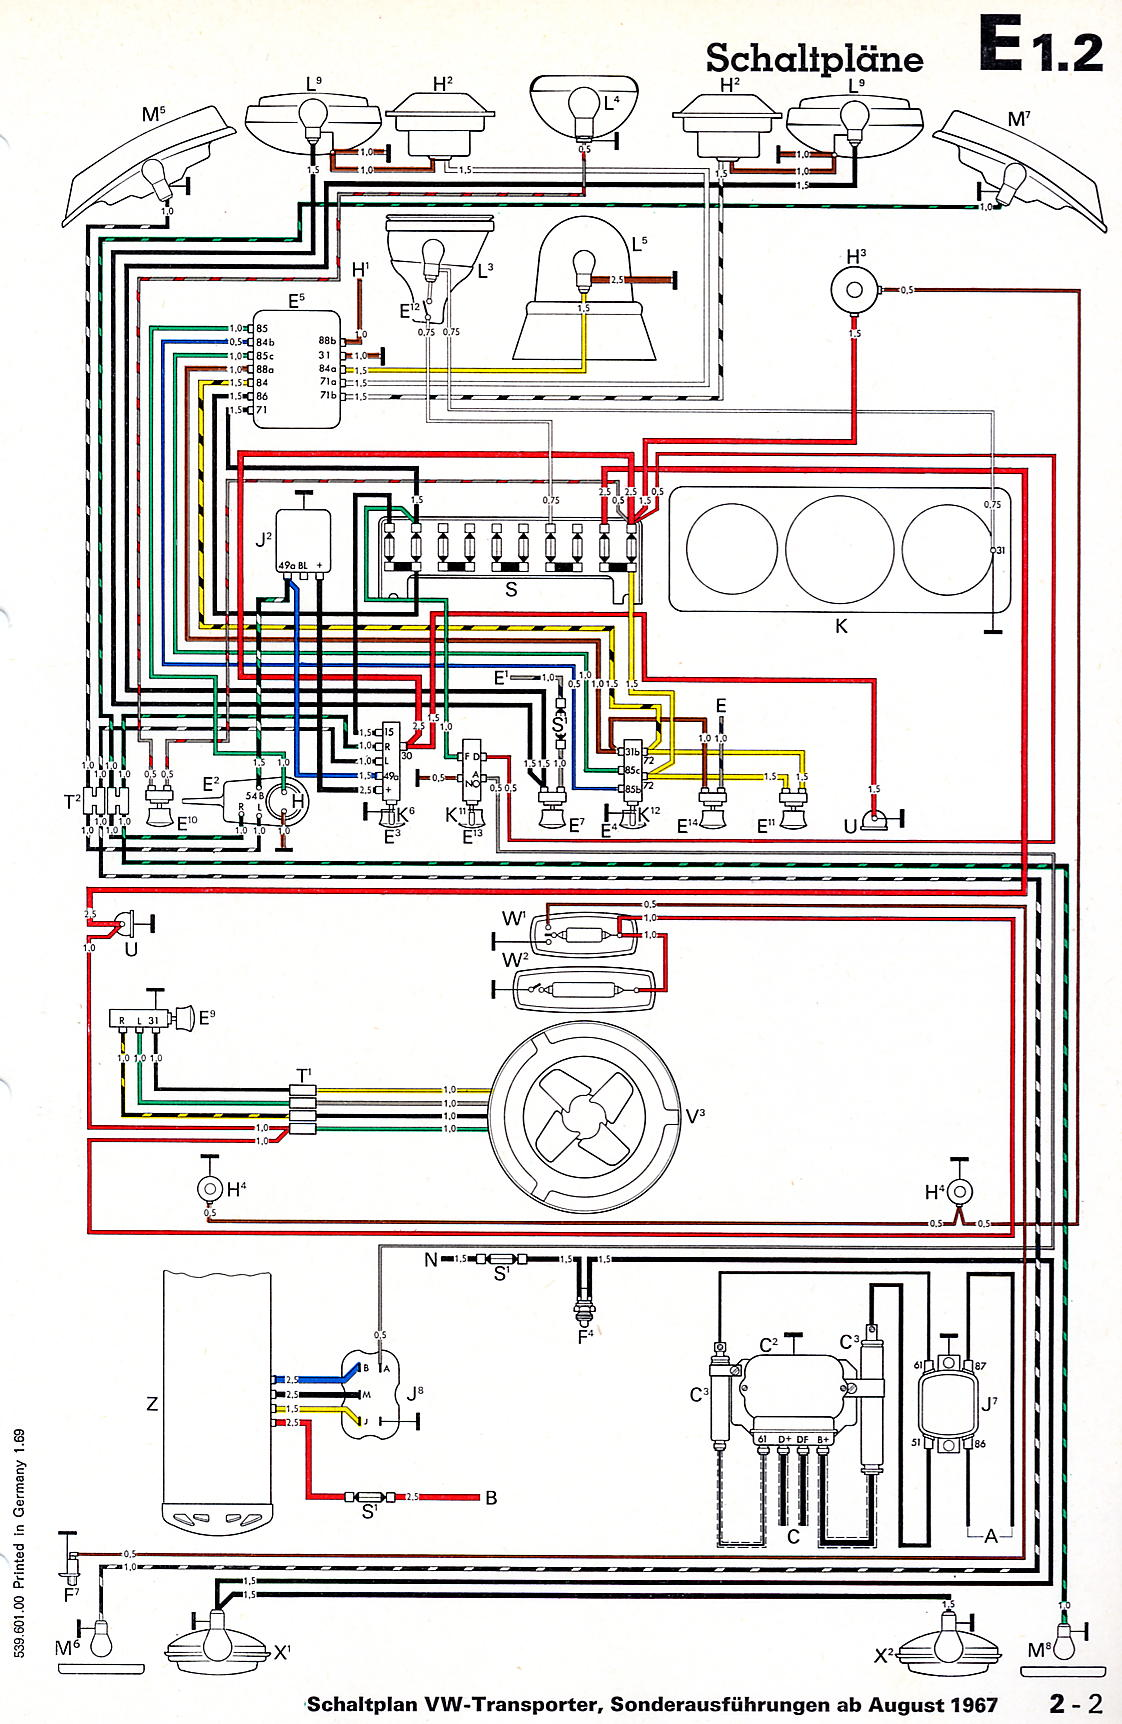 Vw Bus And Other Wiring Diagrams 1972 C10 Diagram 250 Hp 2